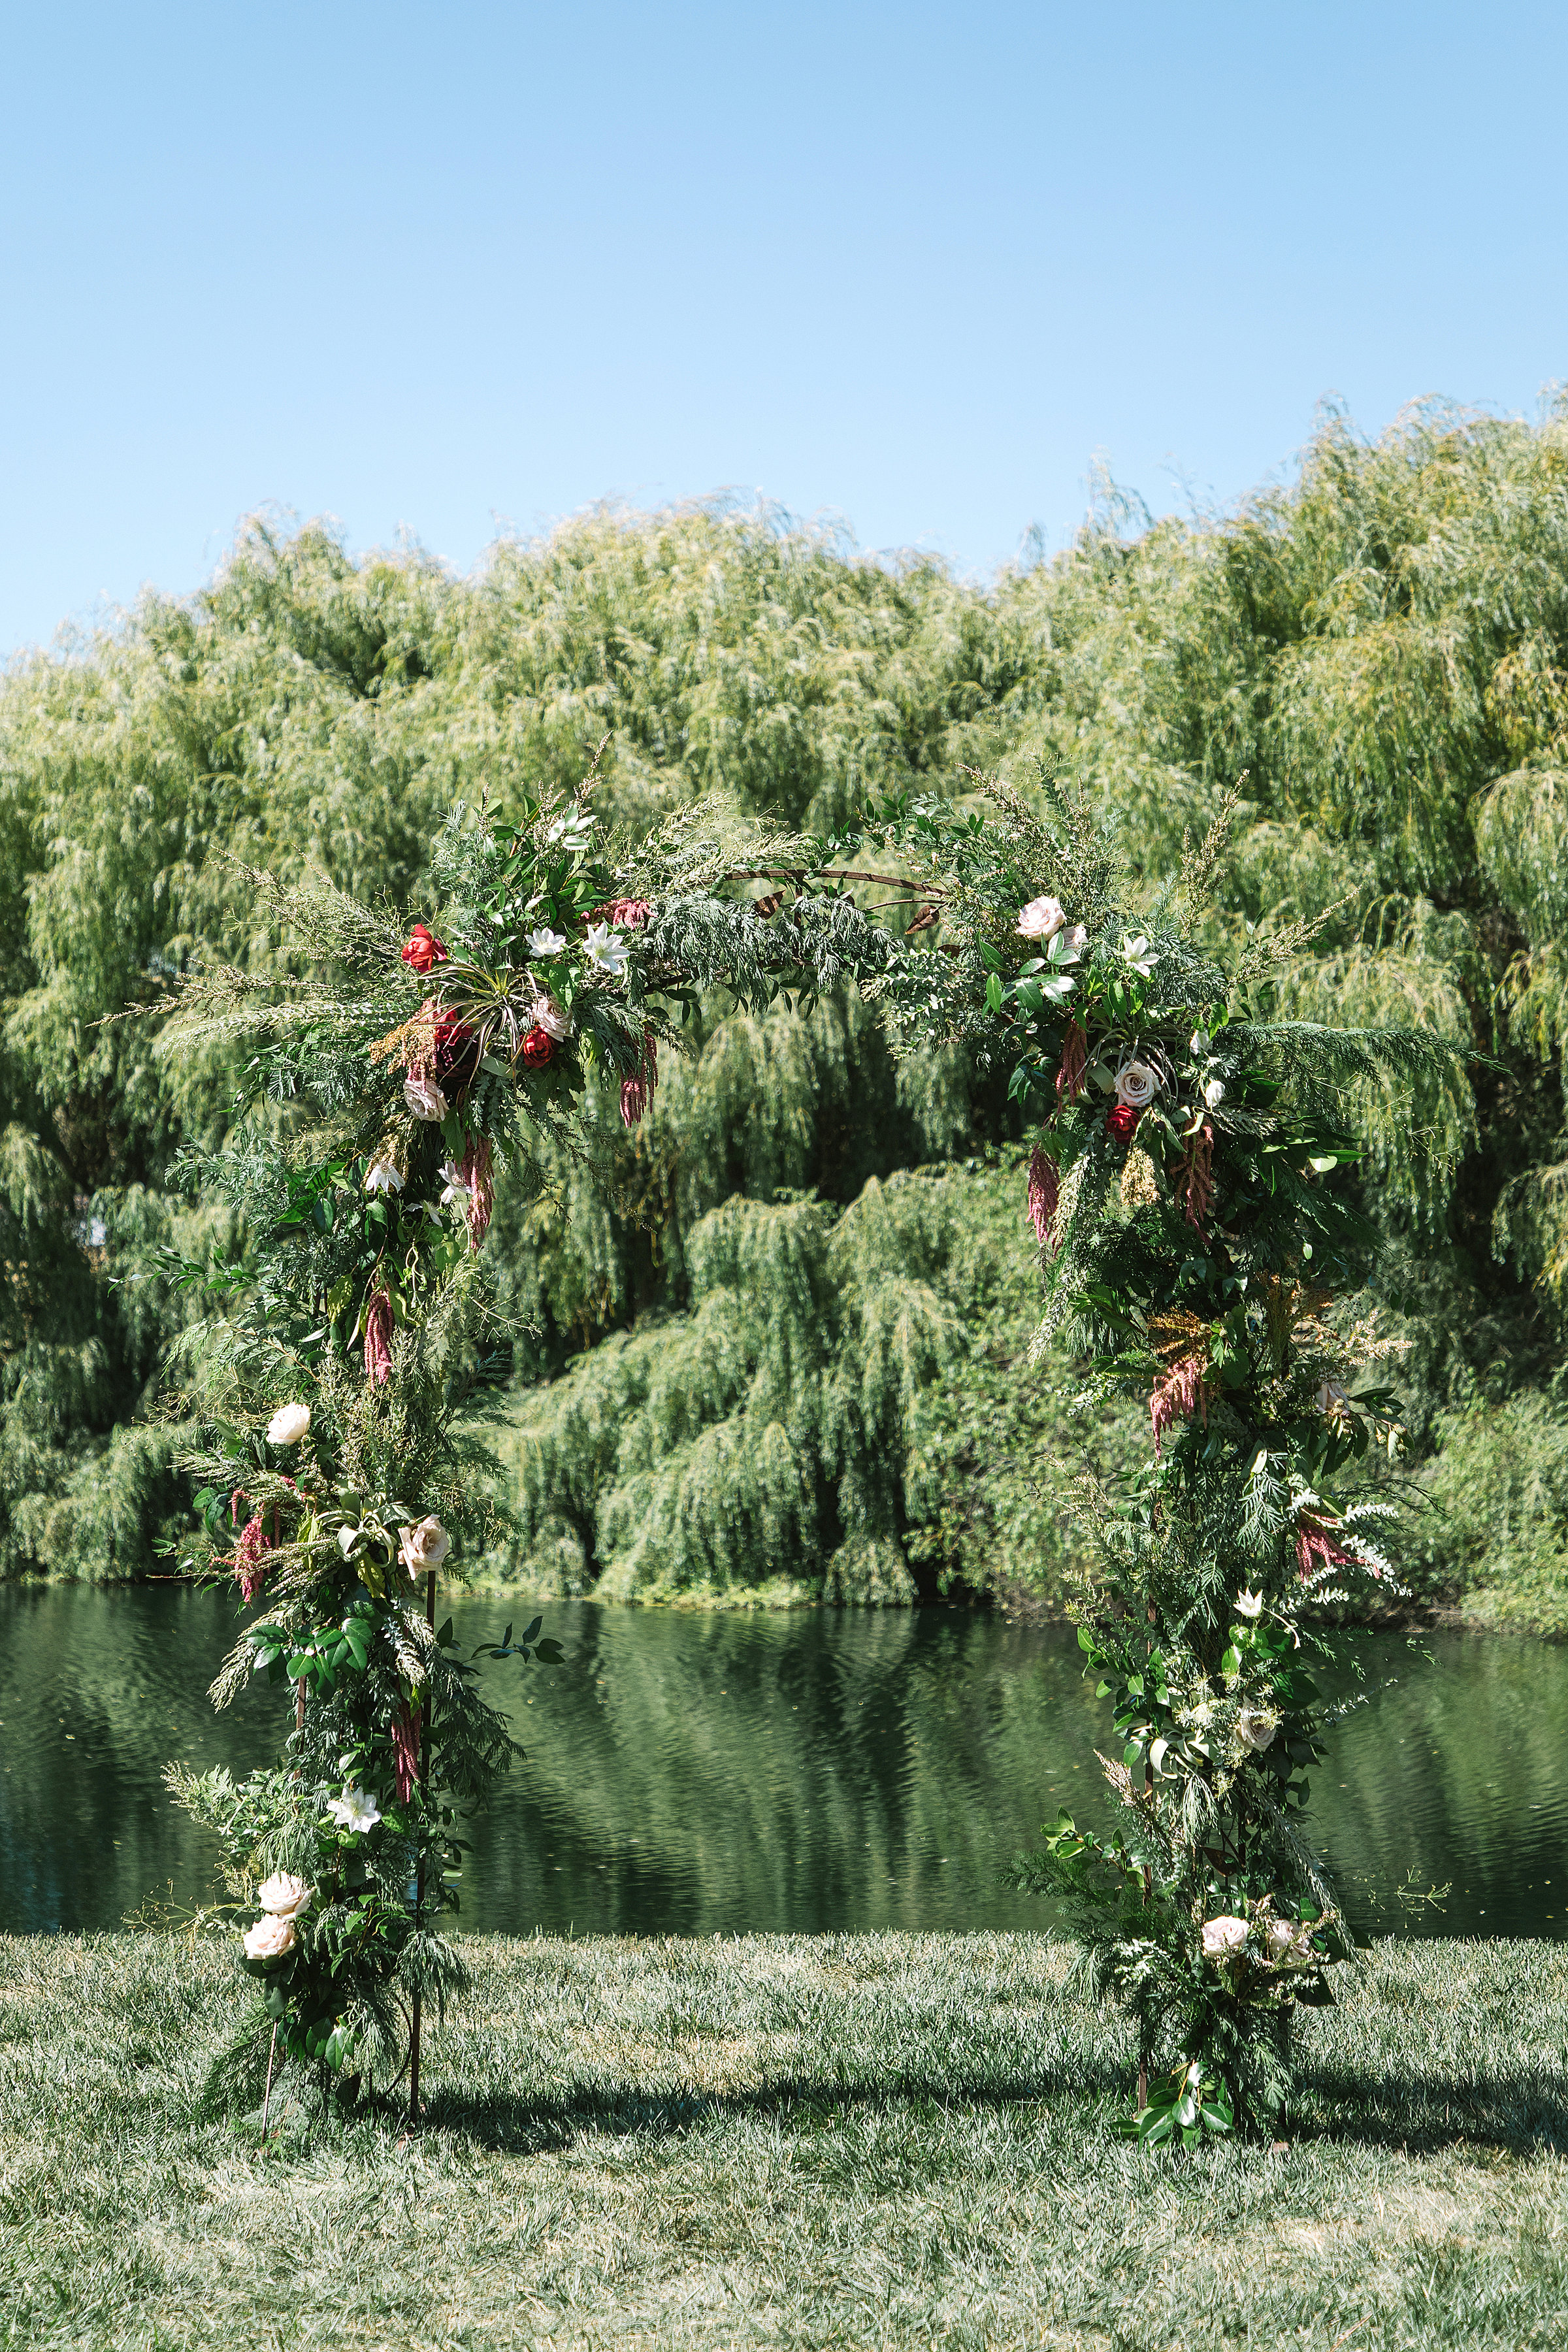 Floral Wedding Arch with Roses, Vines and Berries by Venn Floral at Olympia's Valley Estate in Petaluma photographed by The Edges.